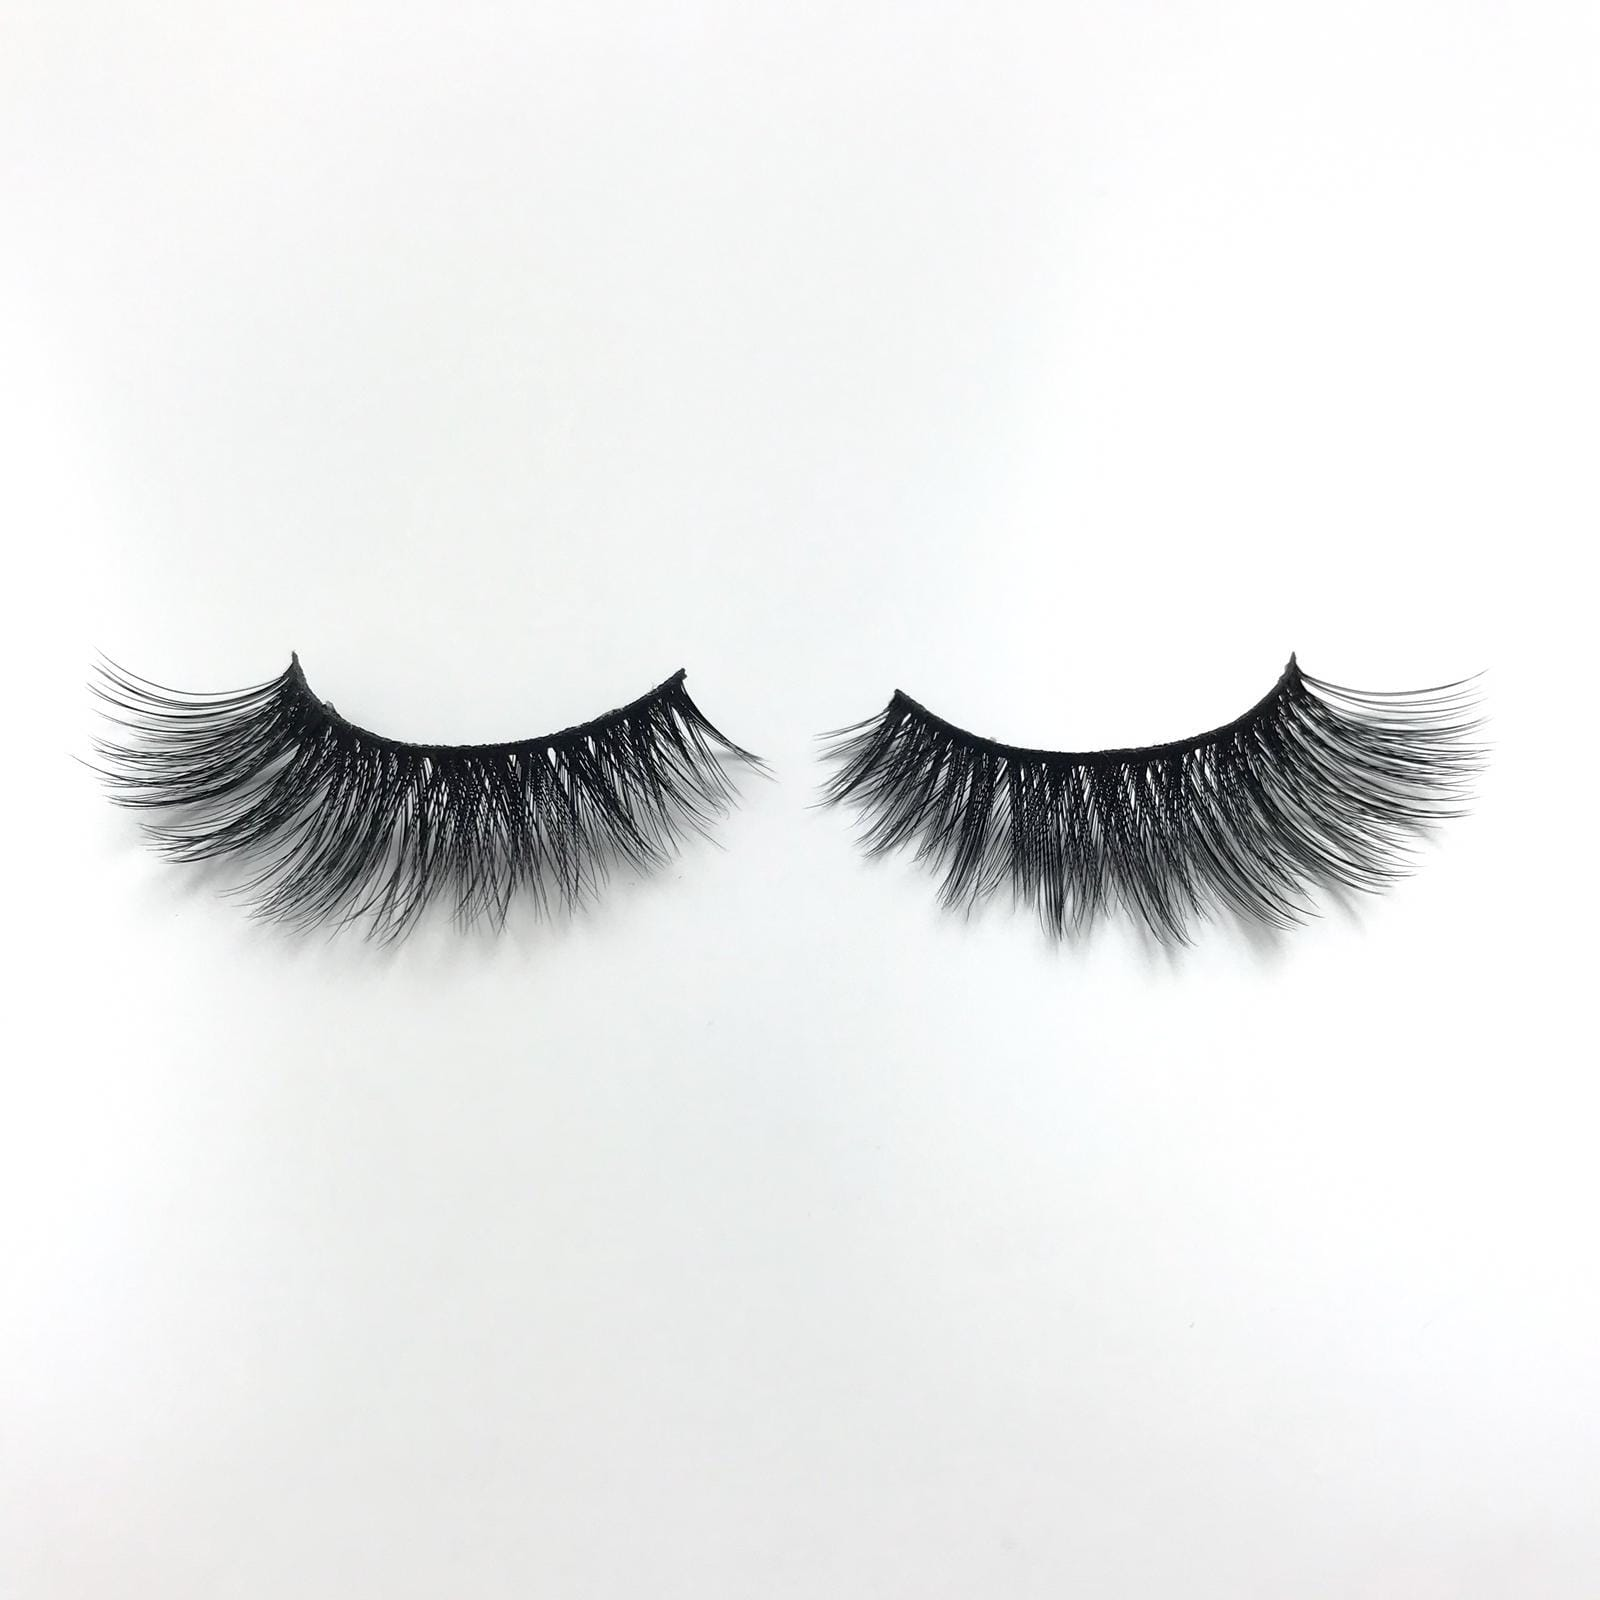 Keke Cruelty-Free Silk Lashes